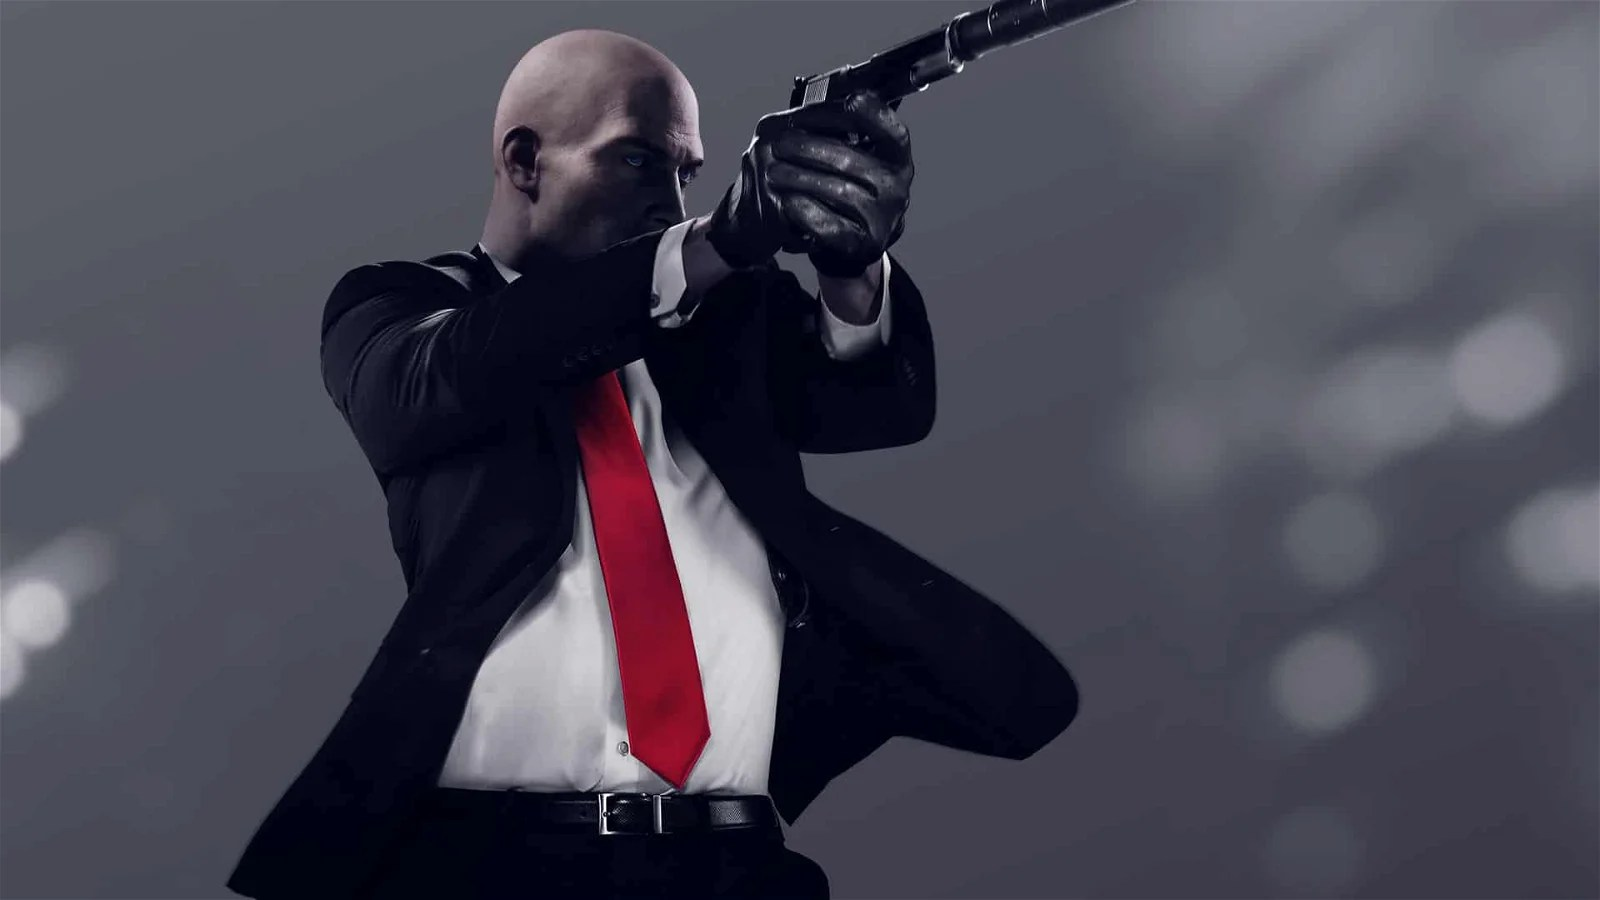 Anime Sniper Wallpaper Hitman 2 Xbox One Review A Real Hit Man